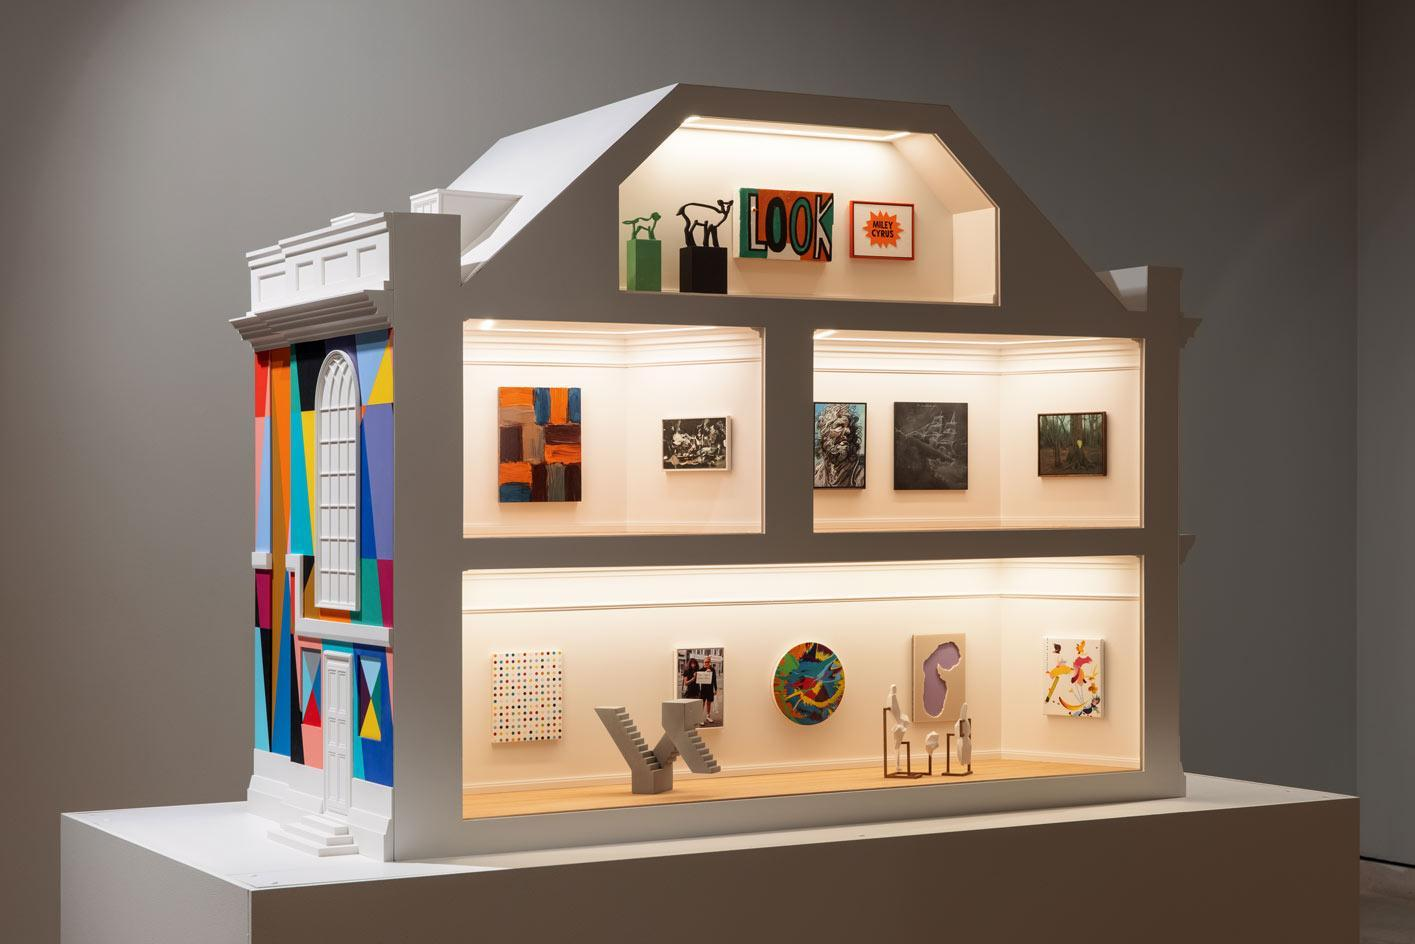 The 2021 Model Art Gallery' at Pallant House Gallery, featuring miniature artworks by leading artists, the best art exhibitions to see in the UK